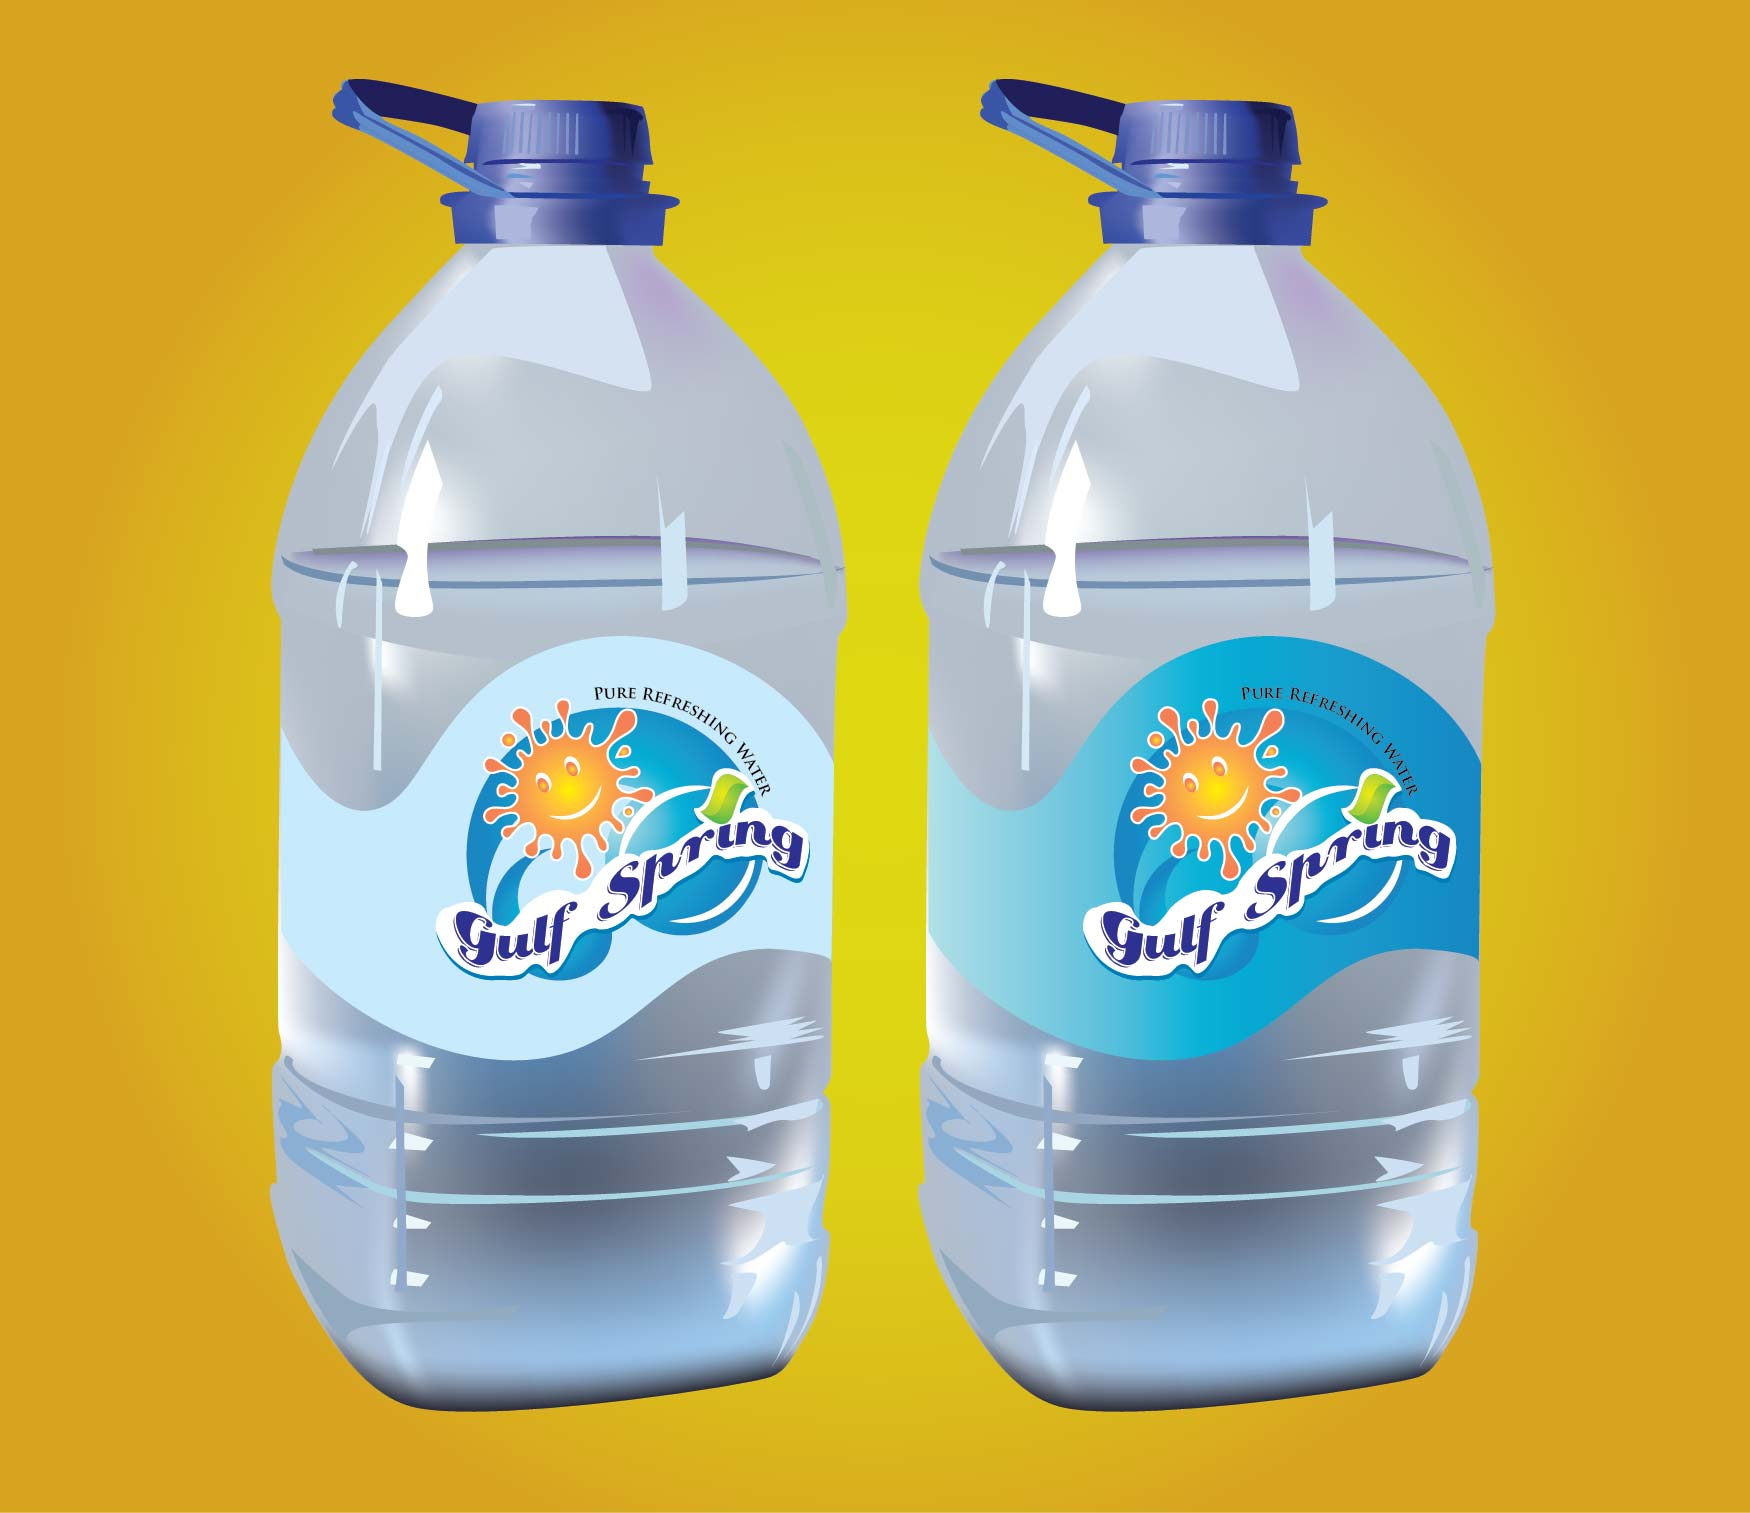 Logo Design by Mahida Kirit Chandrasinh - Entry No. 34 in the Logo Design Contest Inspiring Logo Design for Gulf Spring.